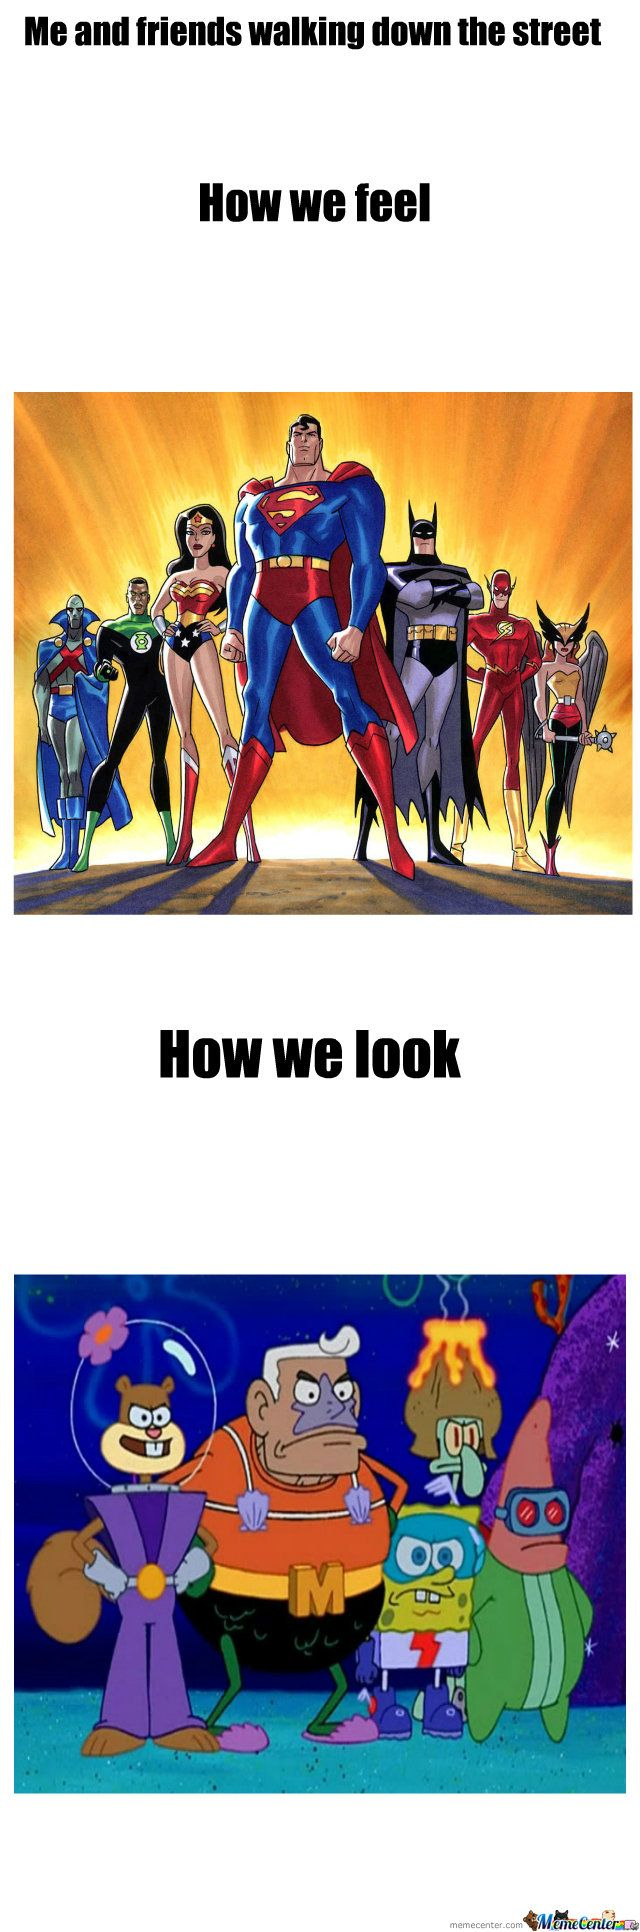 justice league memes | The International Justice League Of Super Acquaintances - Meme Center